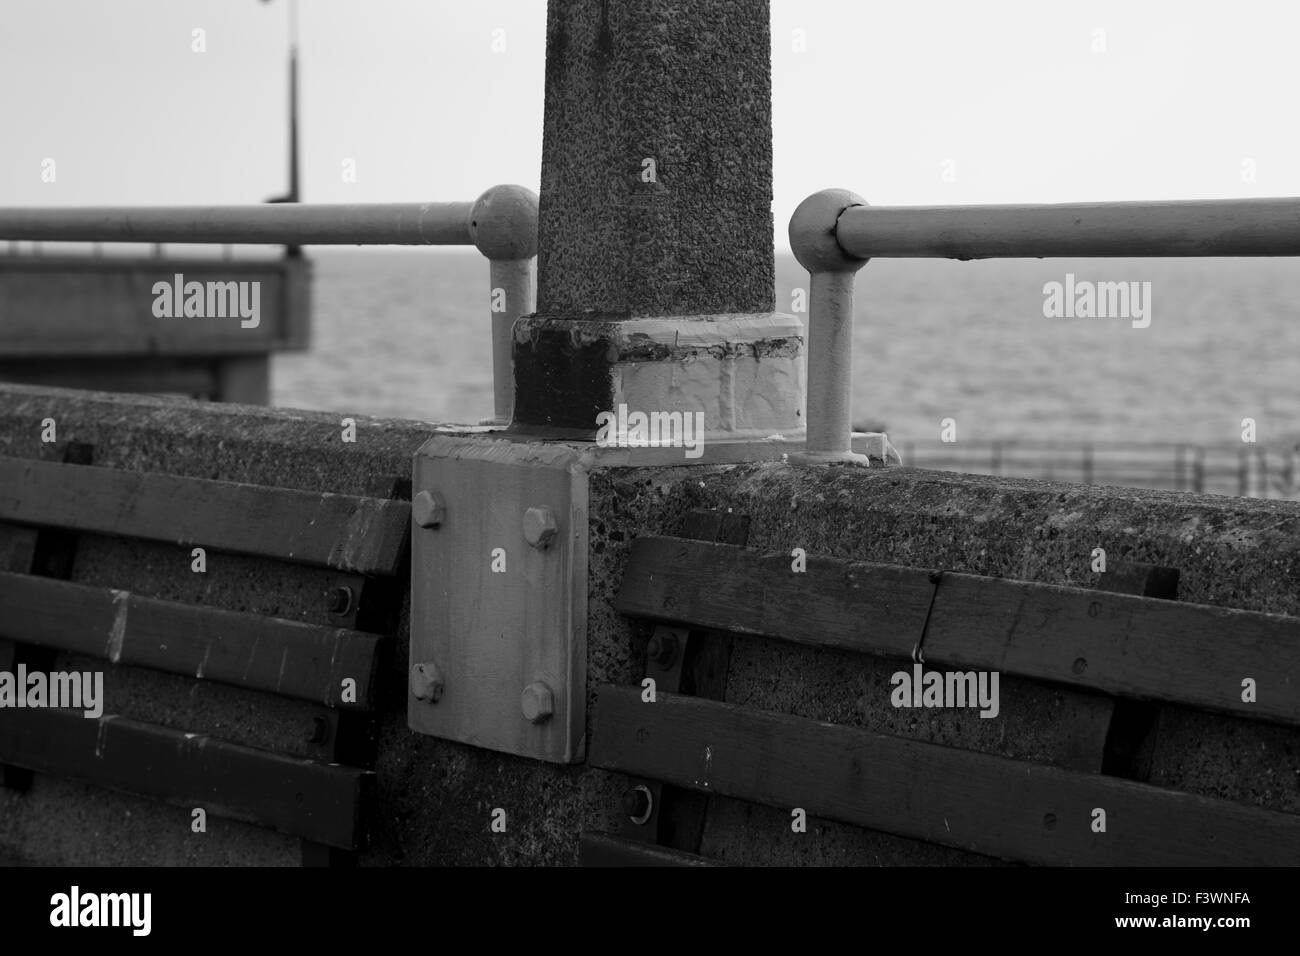 Black and white image of Deal Pier with the english channel in the background, focussing on a metal bracket and - Stock Image